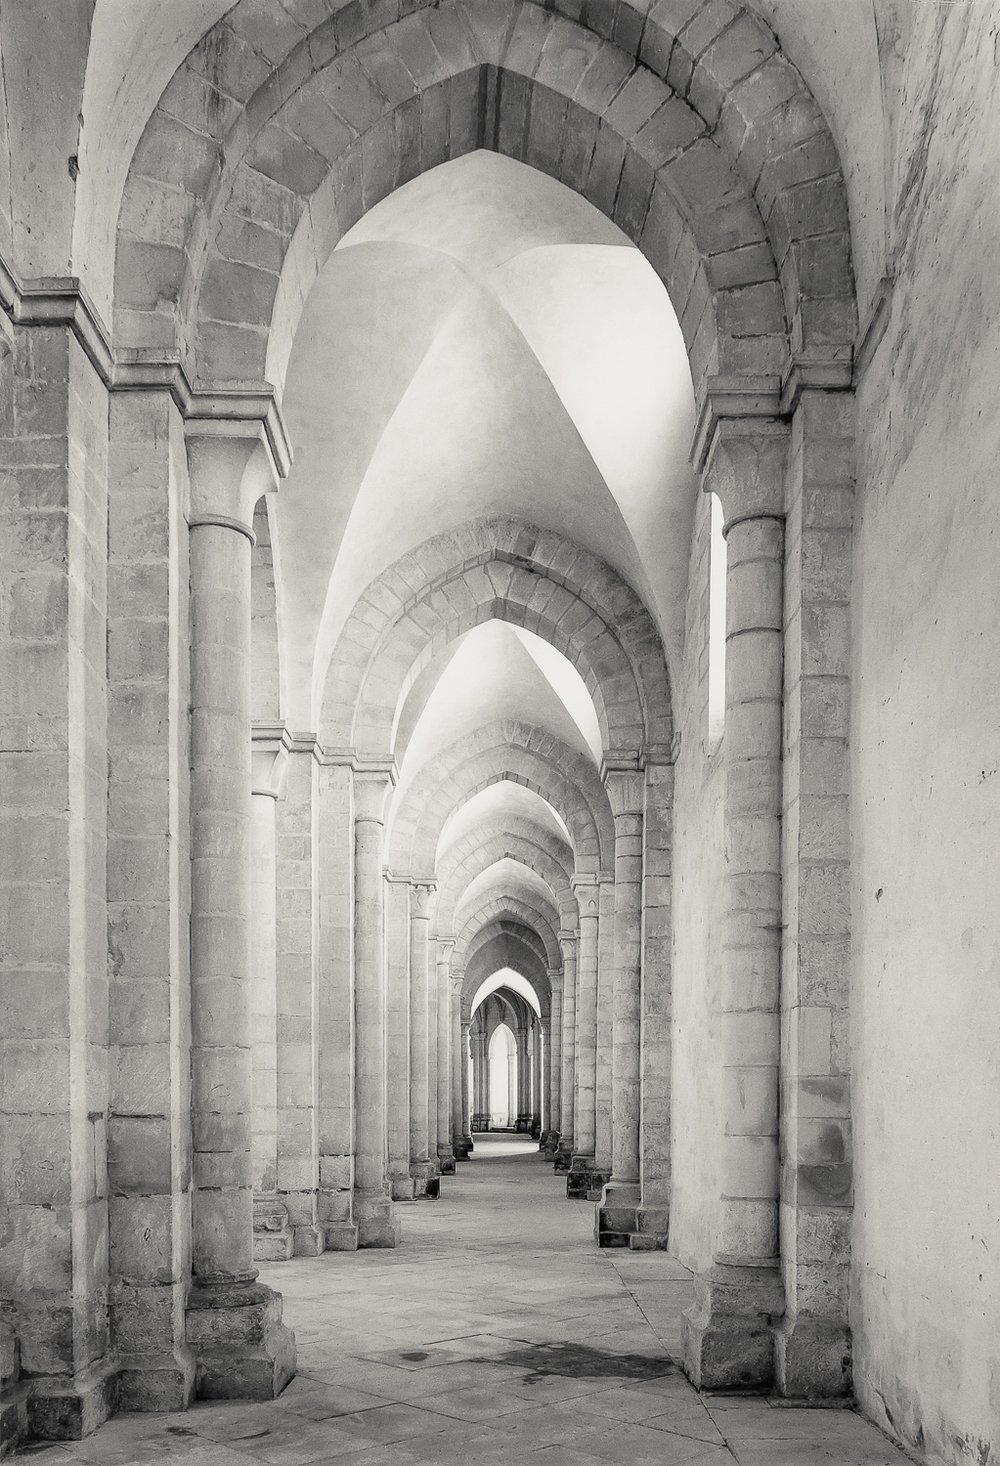 South Aisle Looking East, Pontigny, 1986